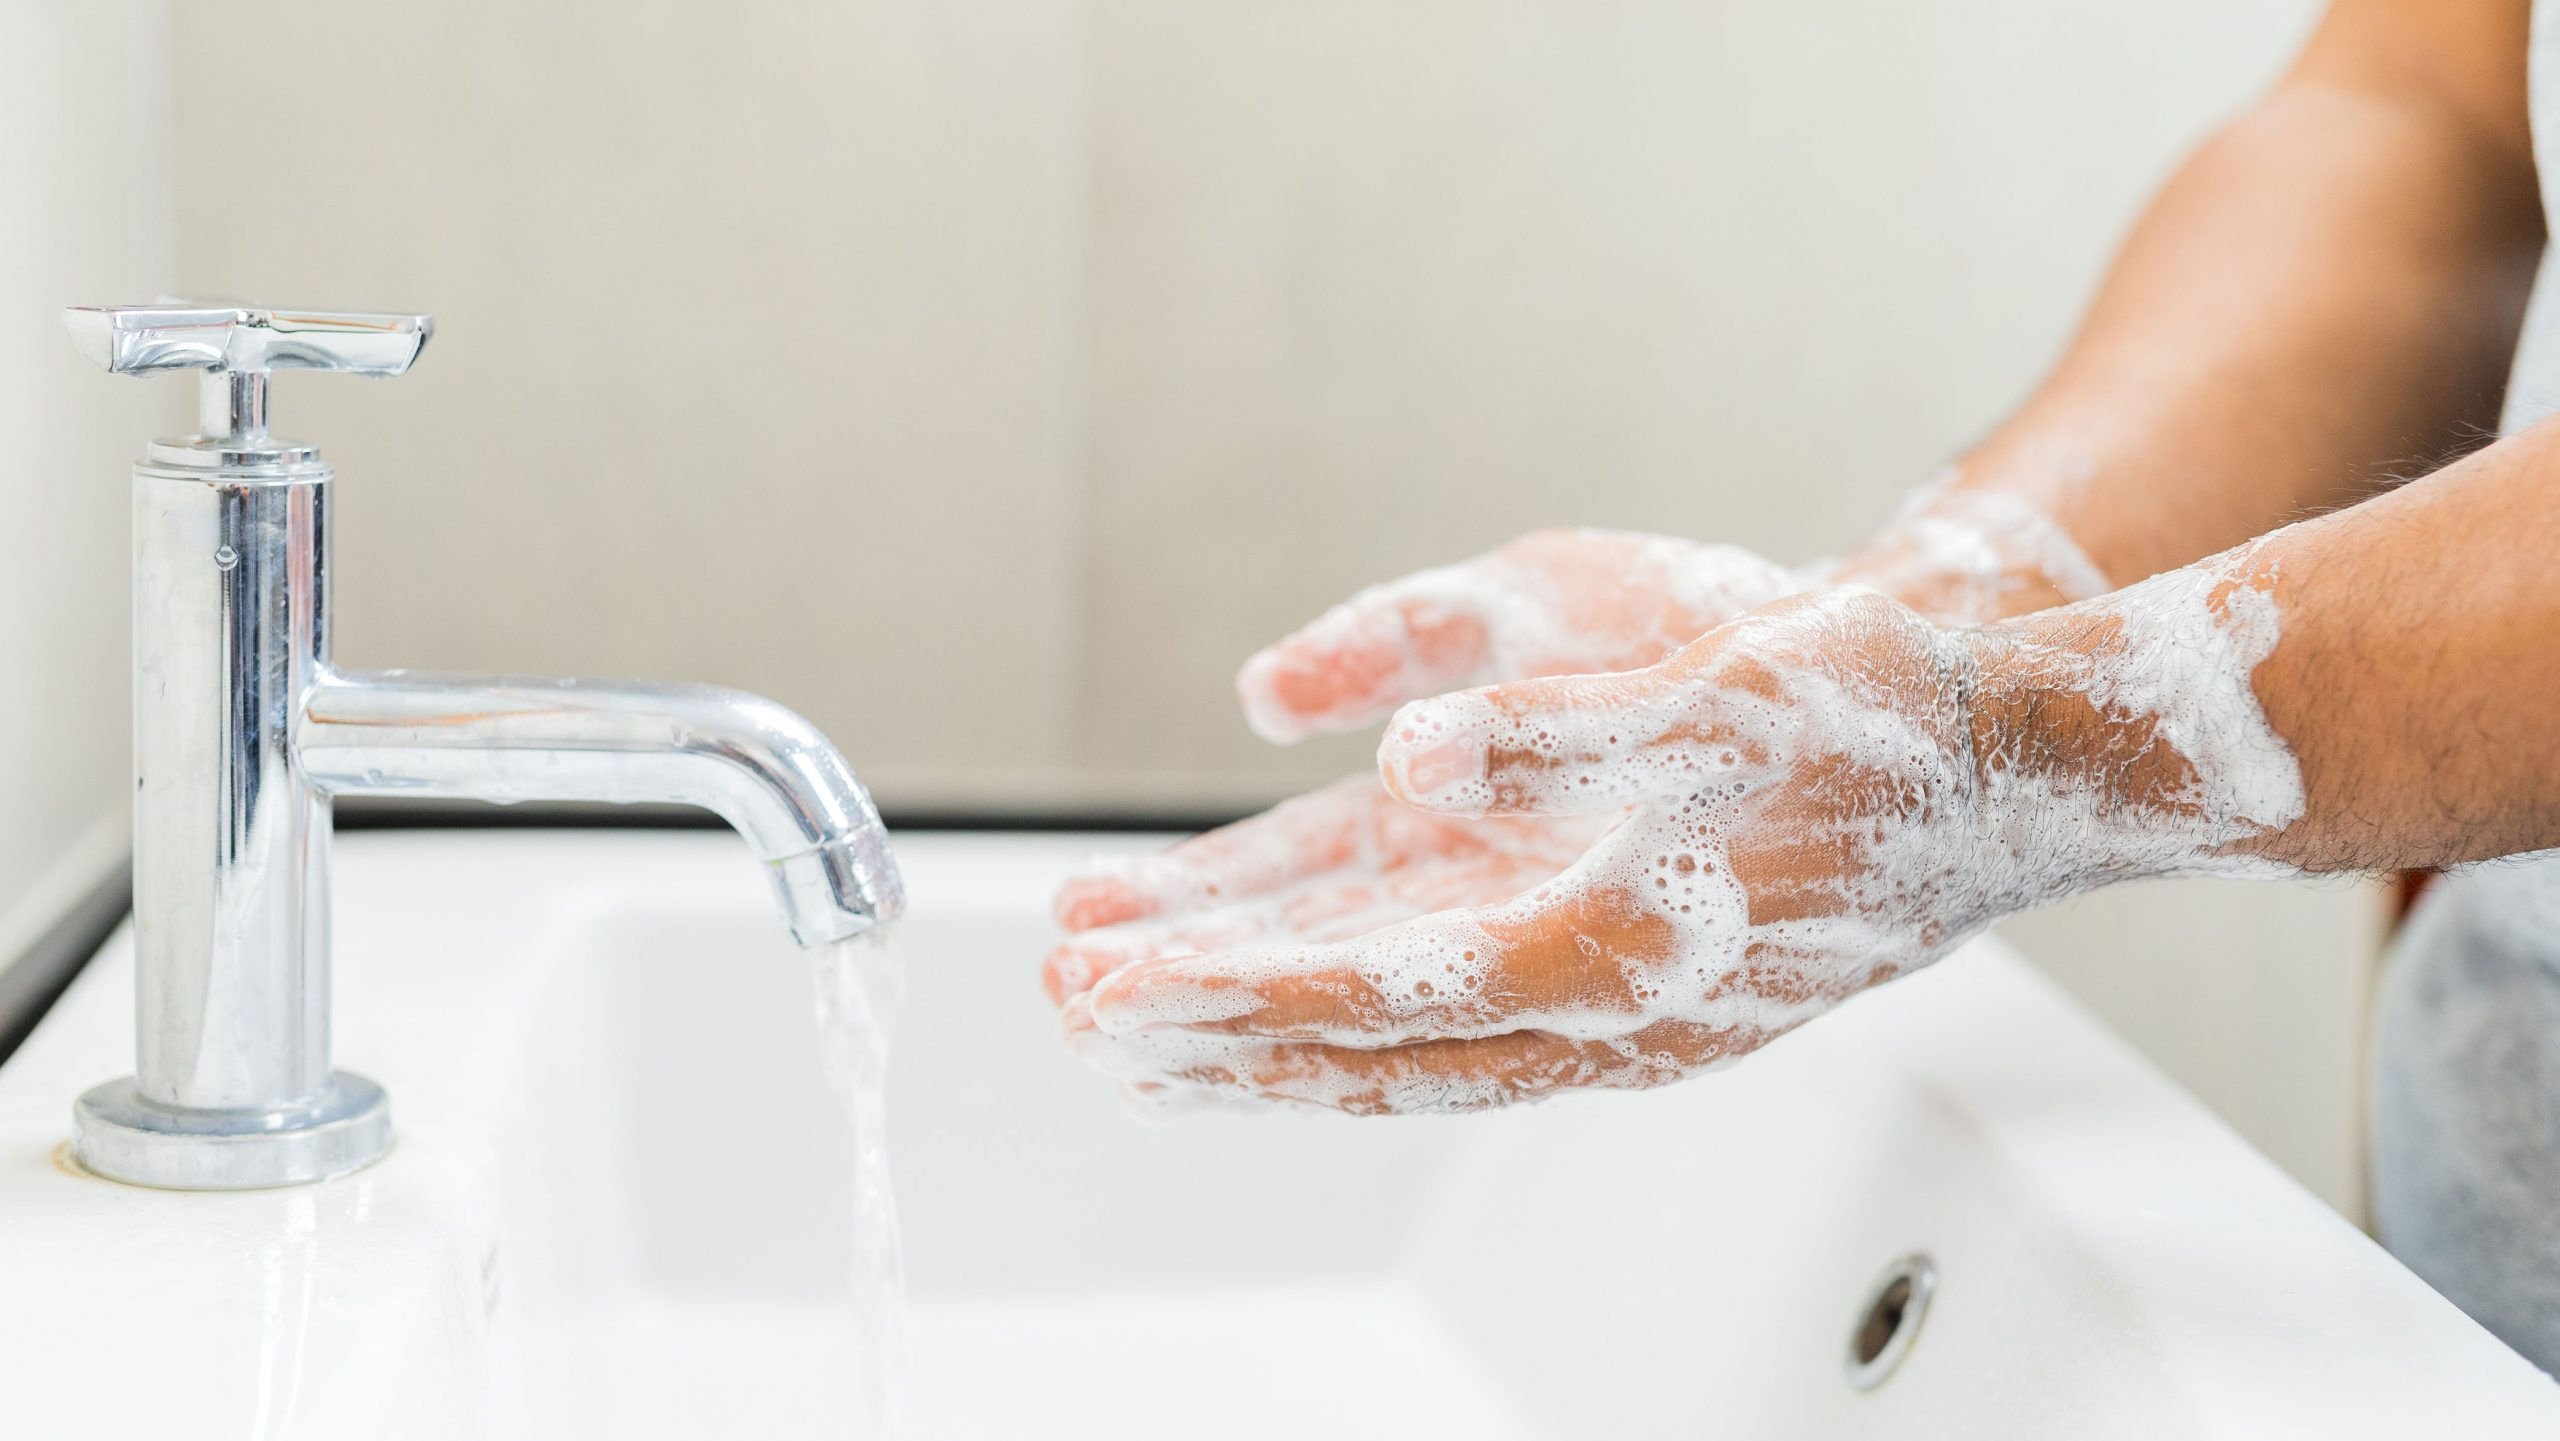 Show Me the Science – How to Wash and Dry Your Hands